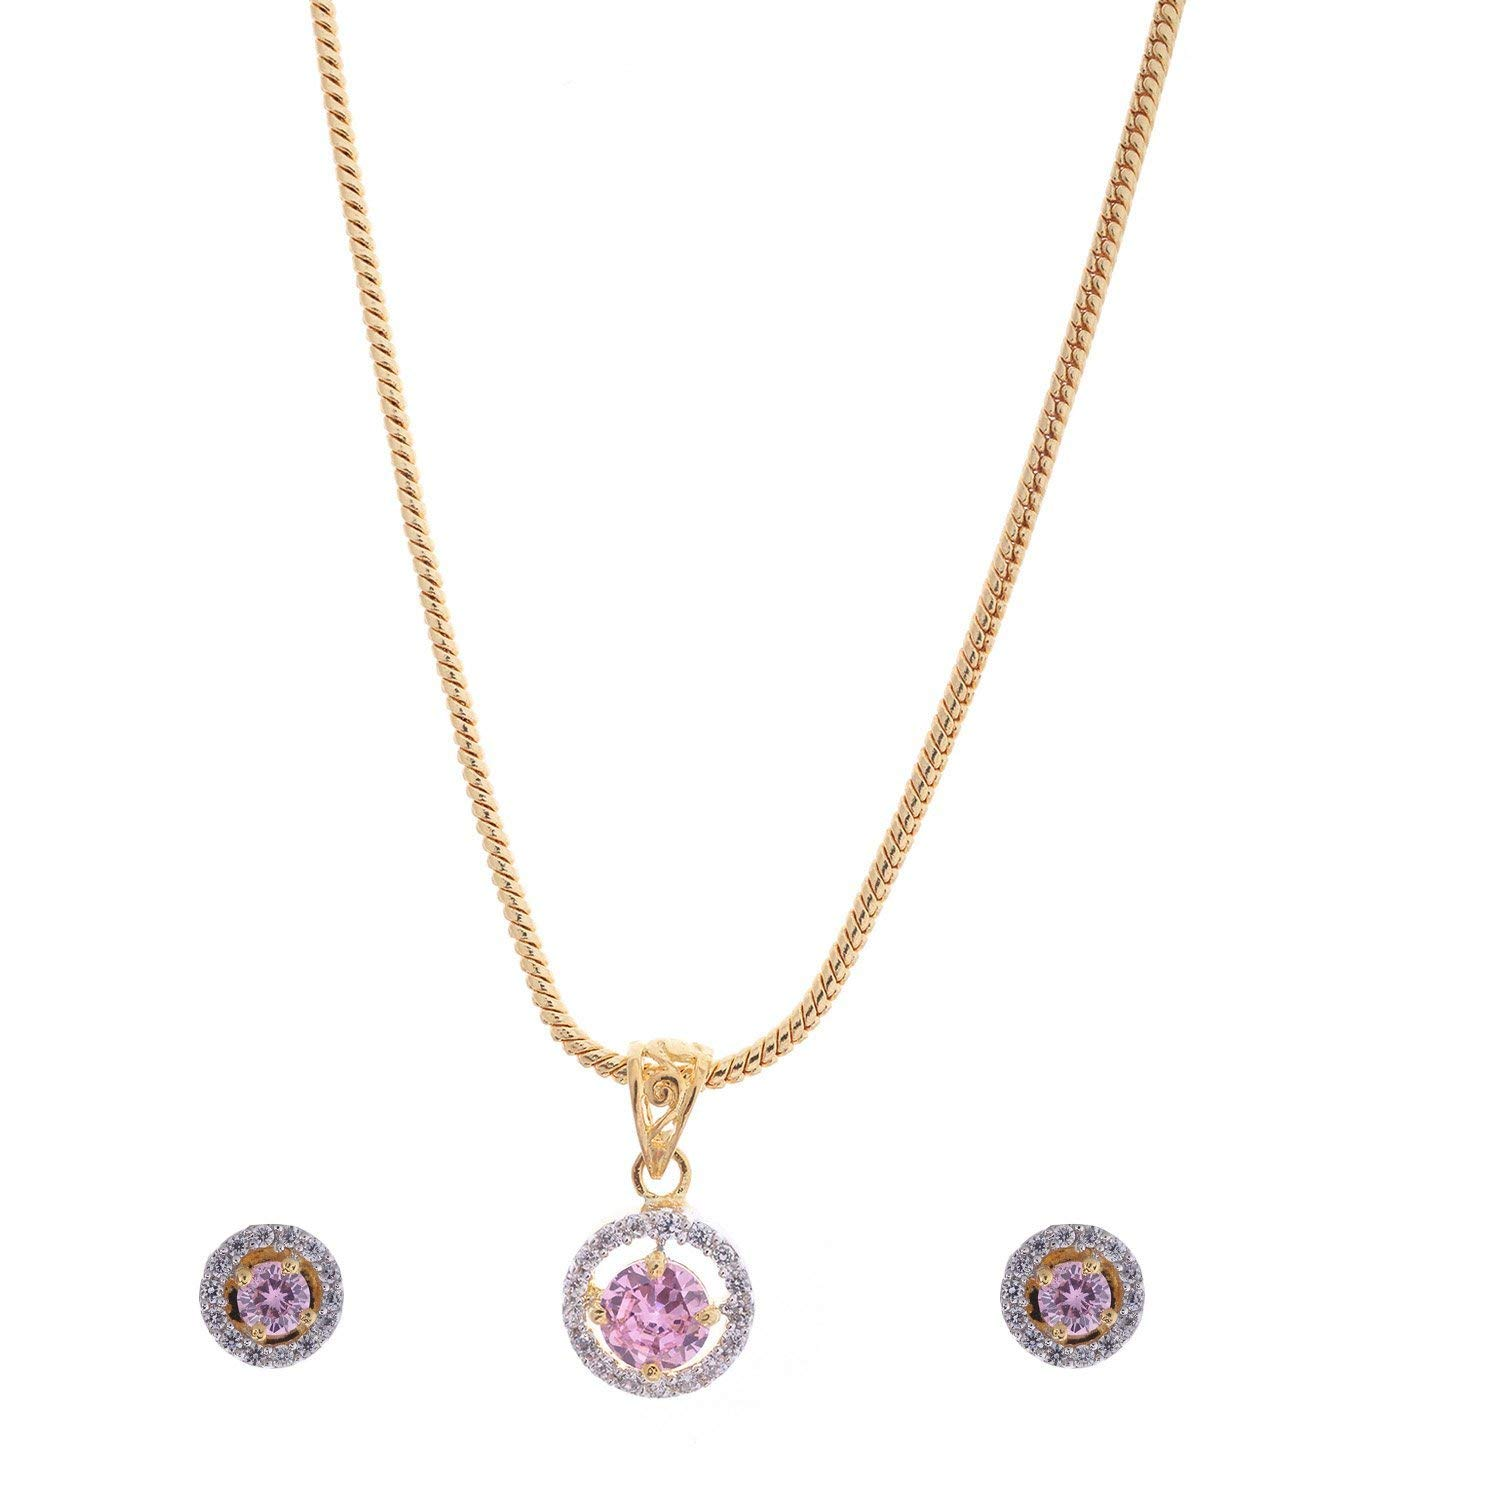 Handicraft Kottage Women's 22 K Gold & Rhodium Plated Pink Sapphire & American Diamond Pendant Set with Earrings & Chain